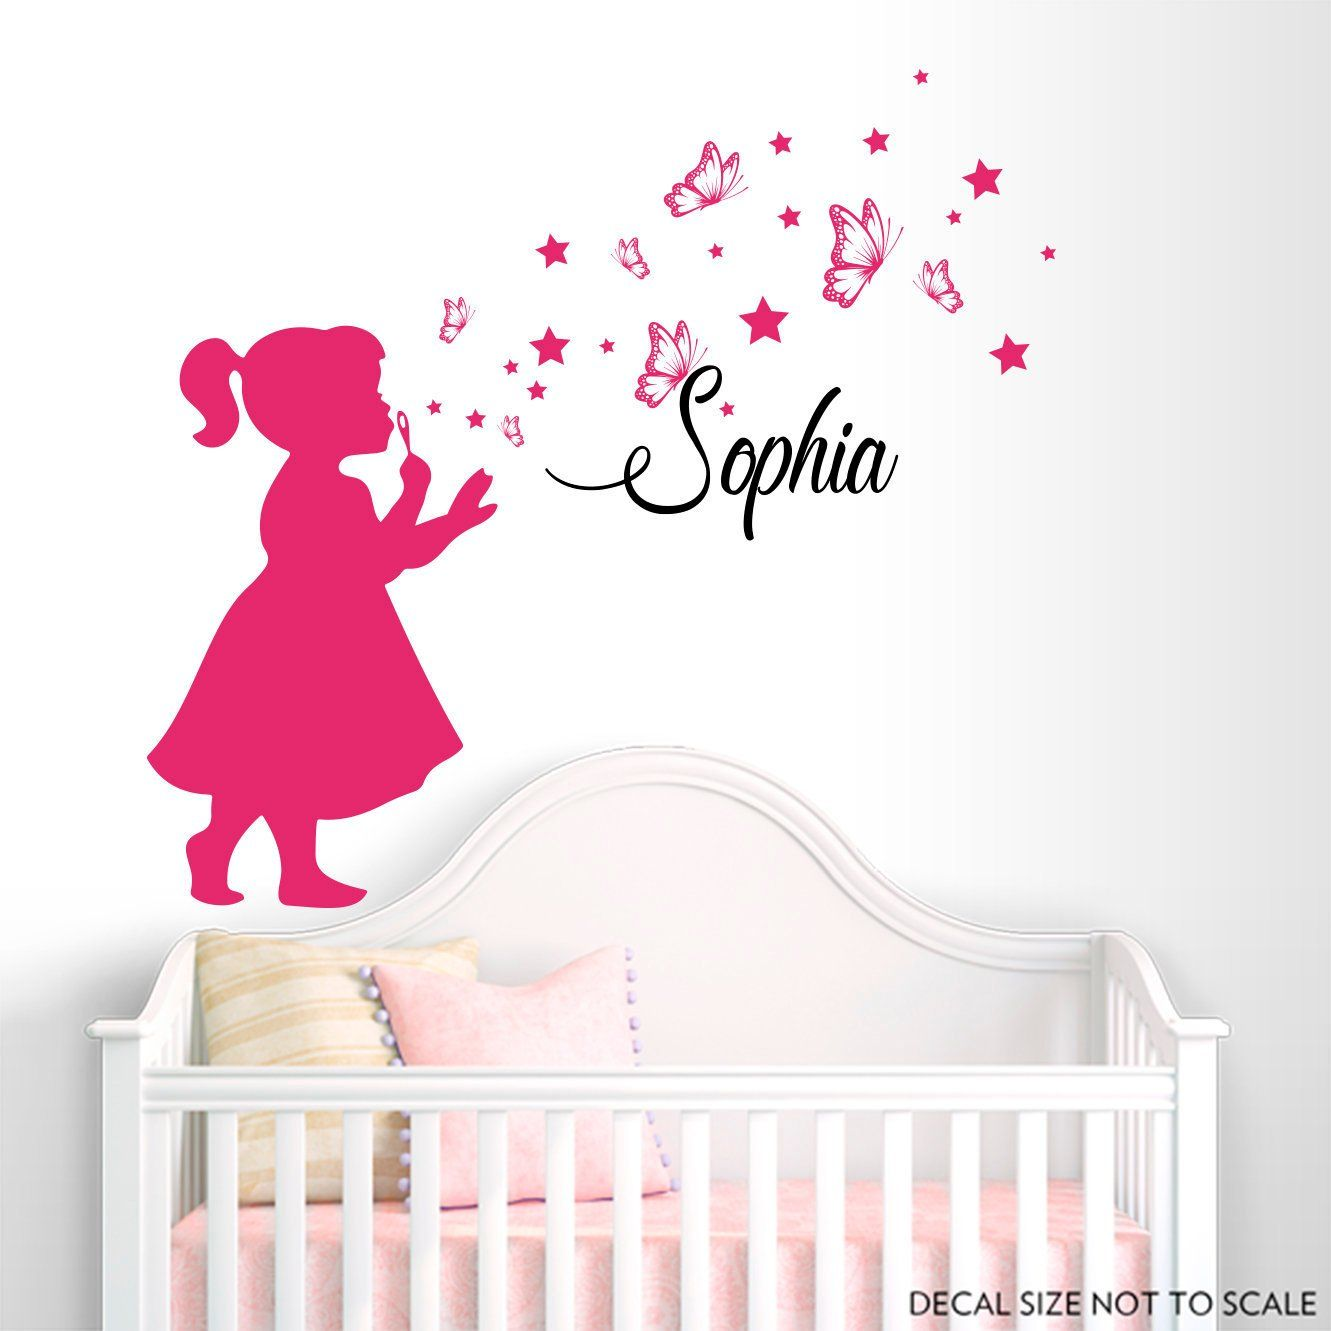 Personalized Name Wall Decal Erfly Stars